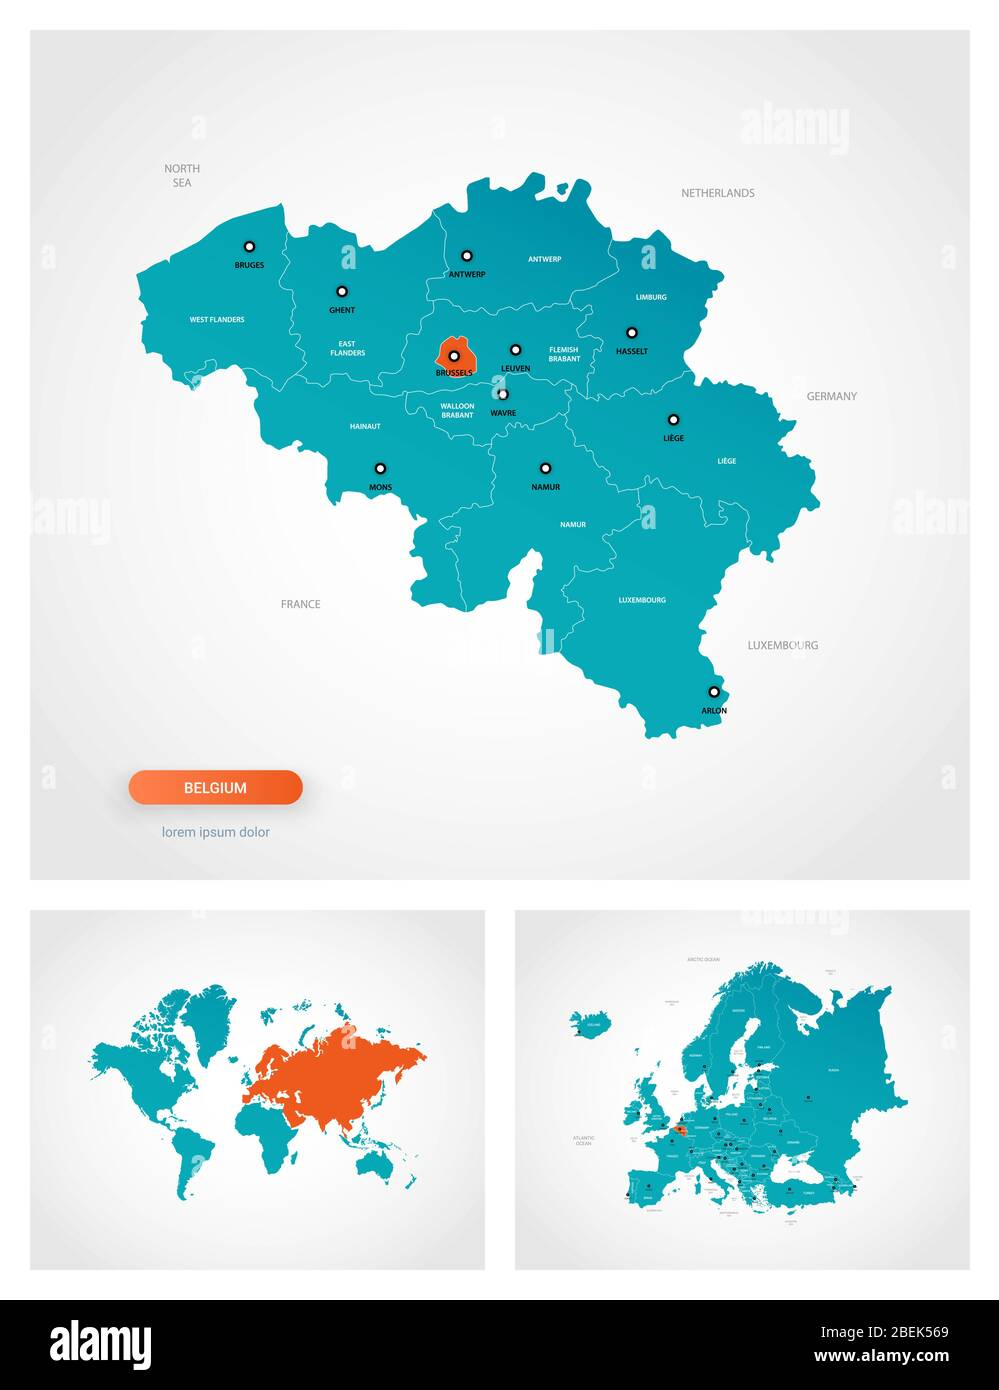 Editable Template Of Map Of Belgium With Marks Belgium On World Map And On Europe Map Stock Vector Image Art Alamy